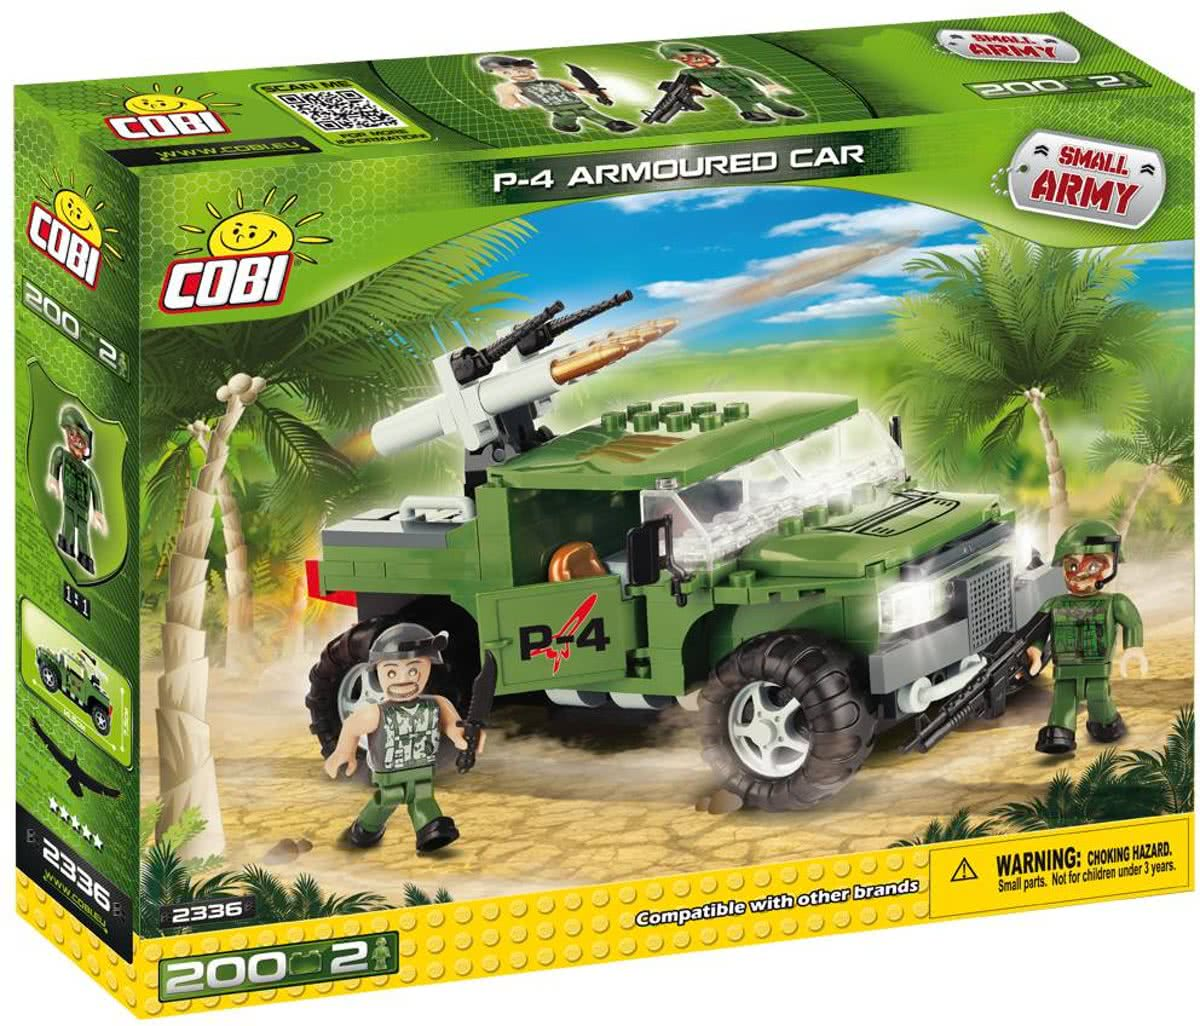 Cobi - Small Army - P-4 Armoured Car (2336)